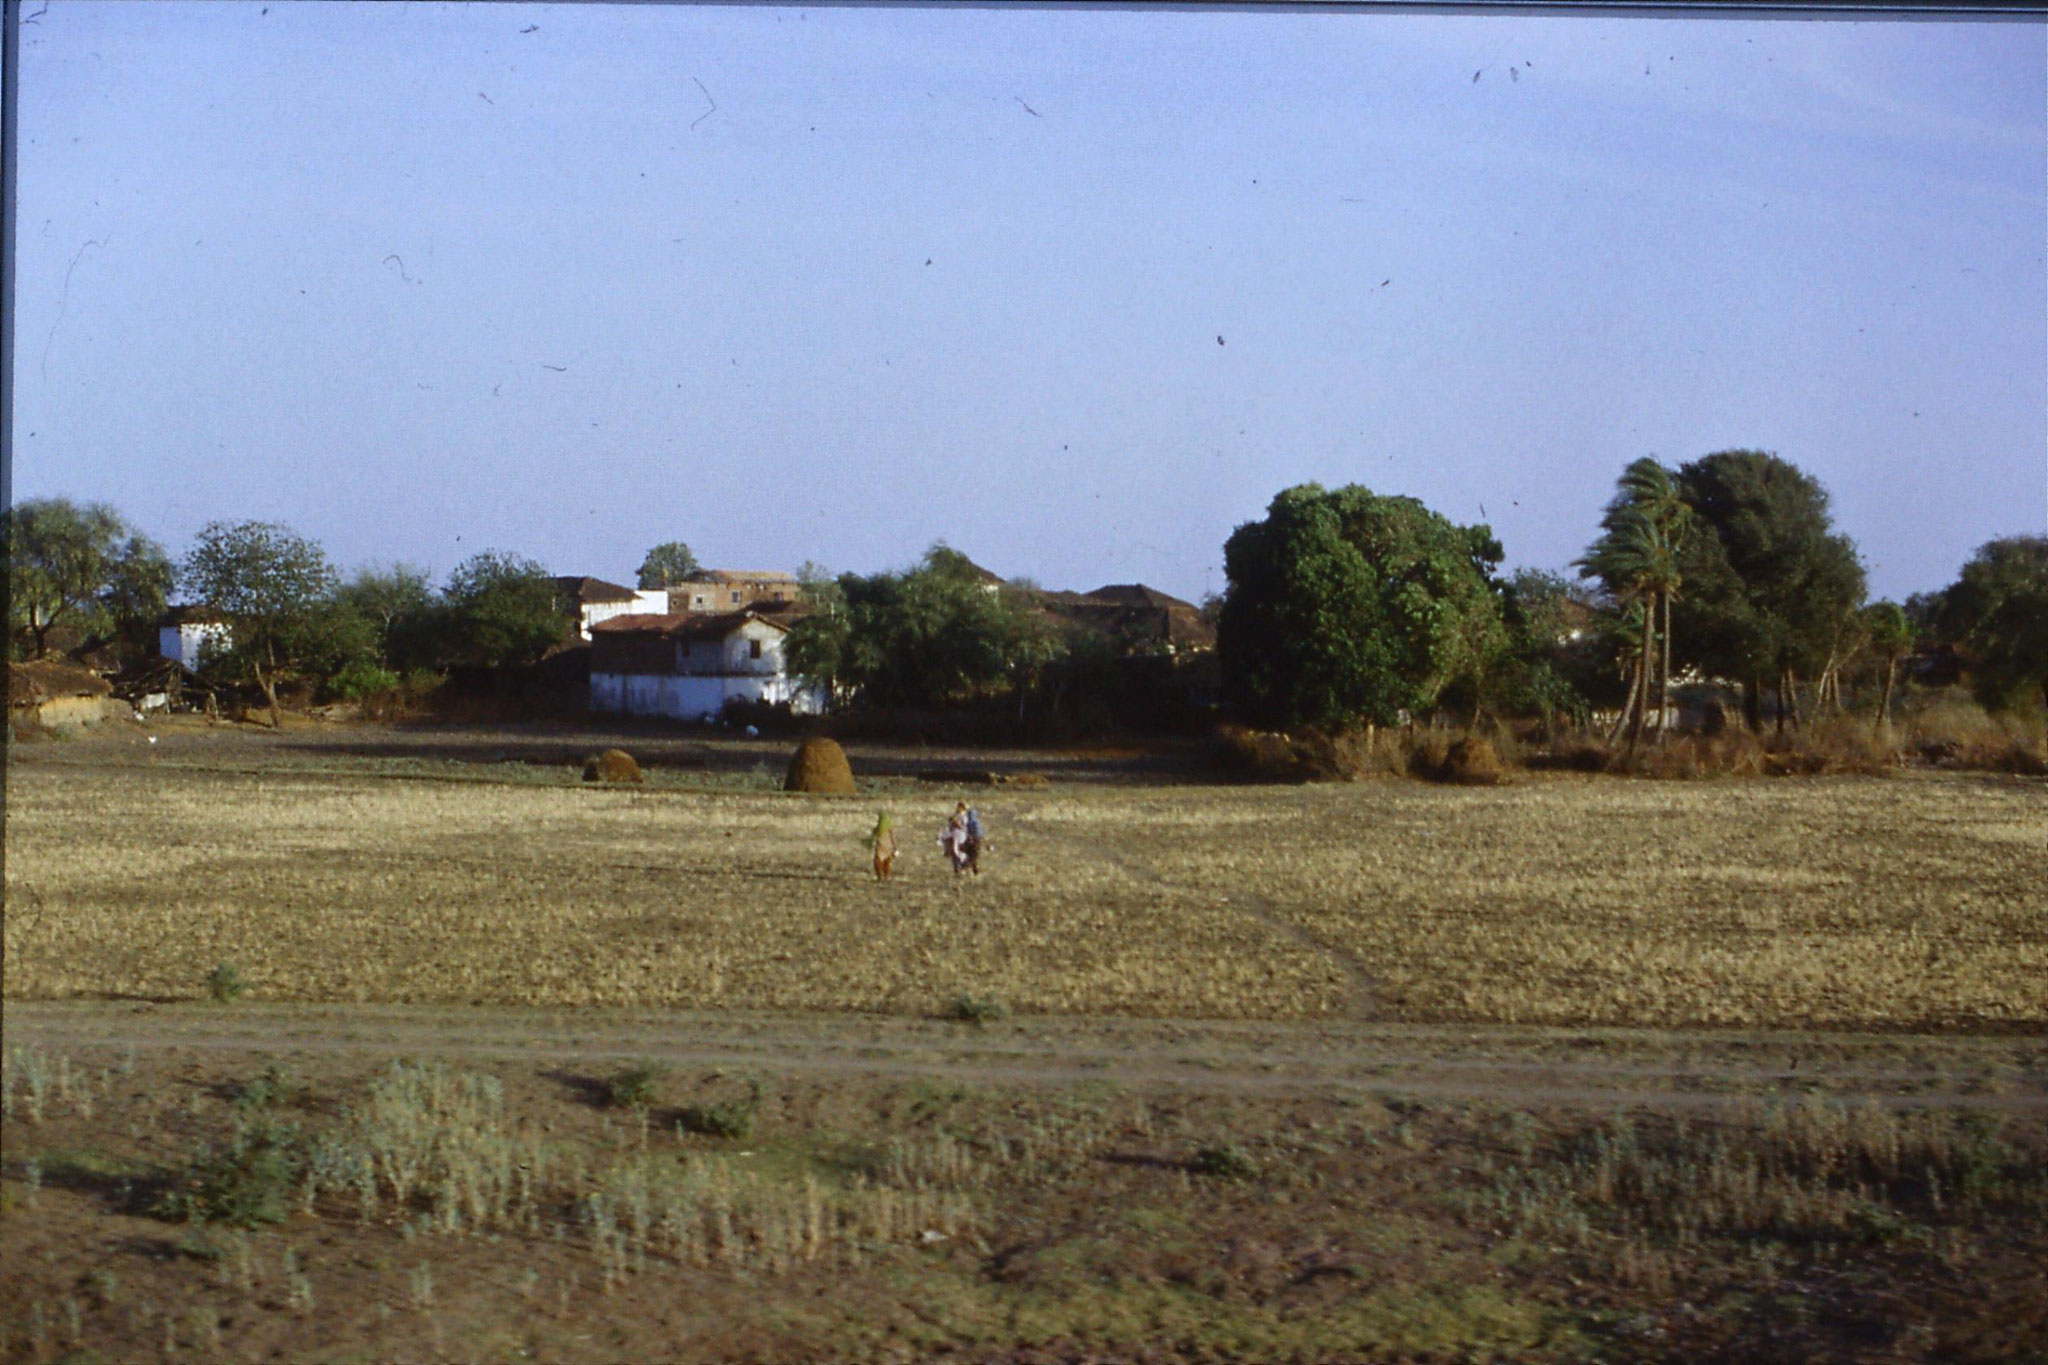 108/32: 24/3/1990 on train soon after Bhopal looking east